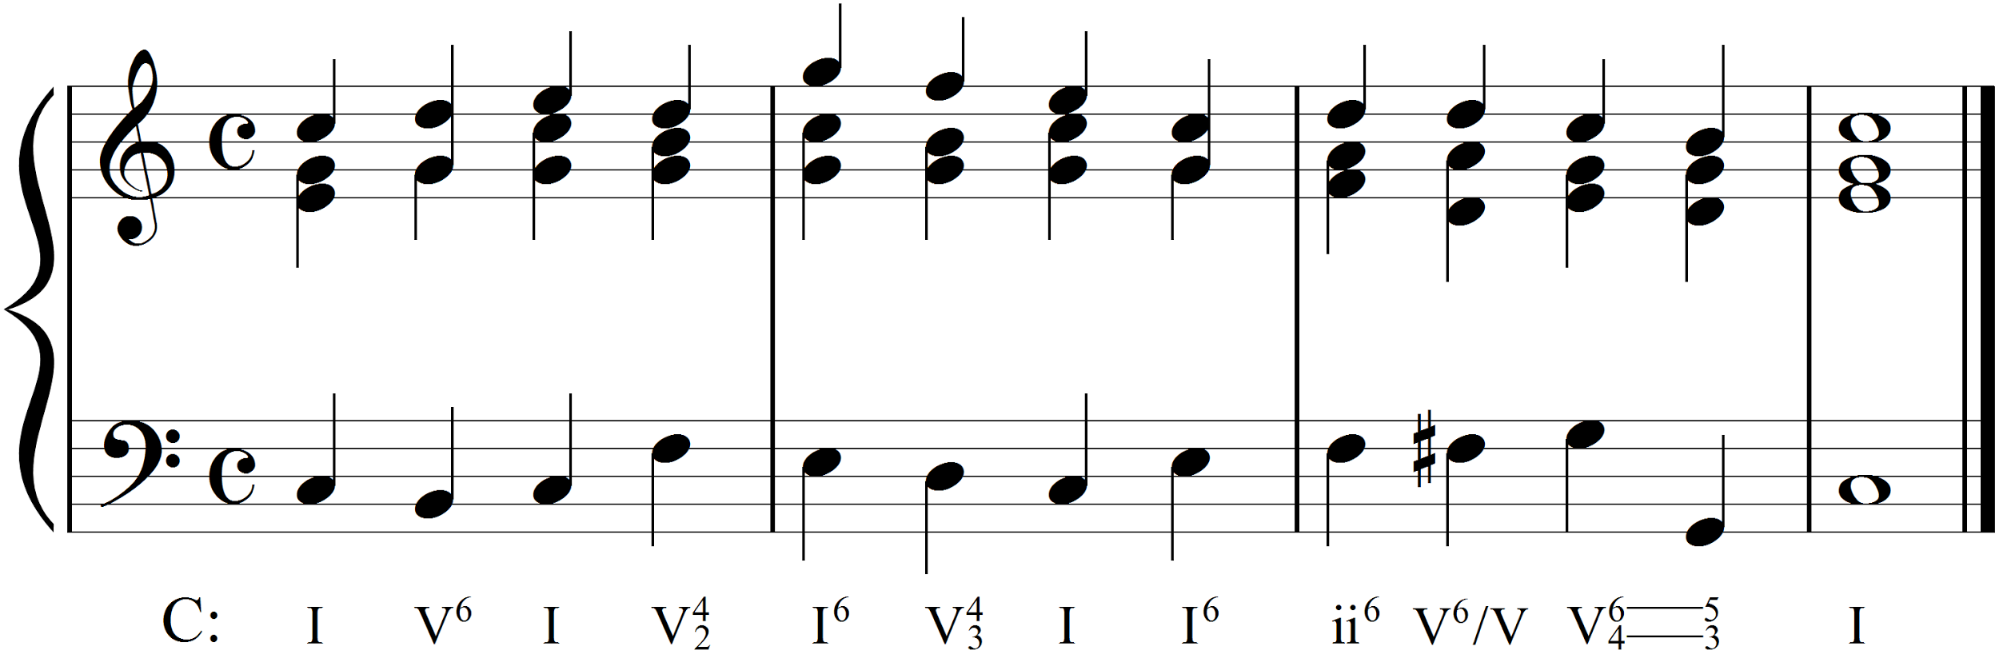 Notation of a four-measure harmonic progression in chorale style.